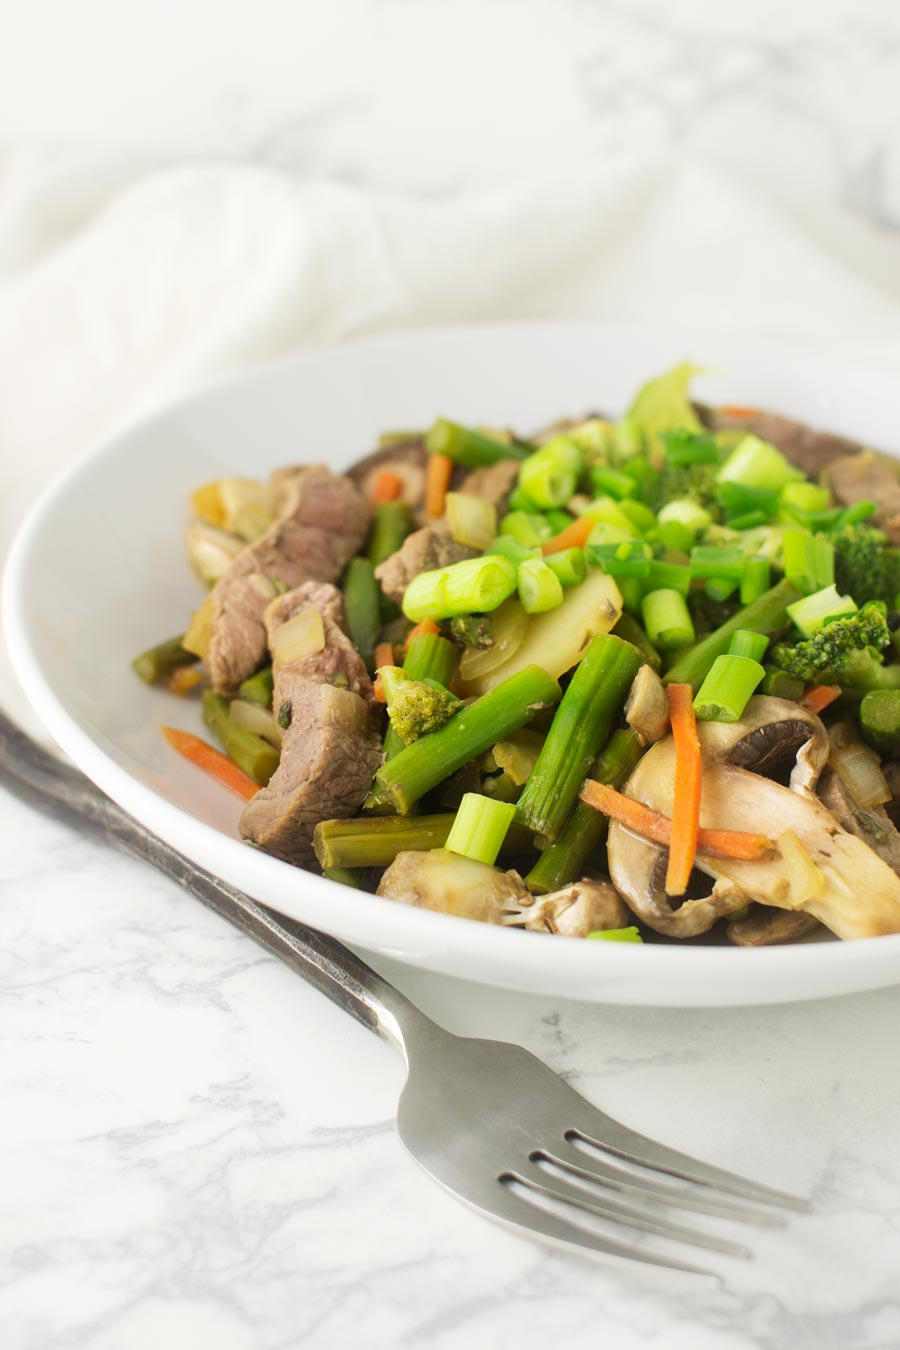 Five Veggie Stir-Fry recipe from acleanplate.com #paleo #aip #glutenfree